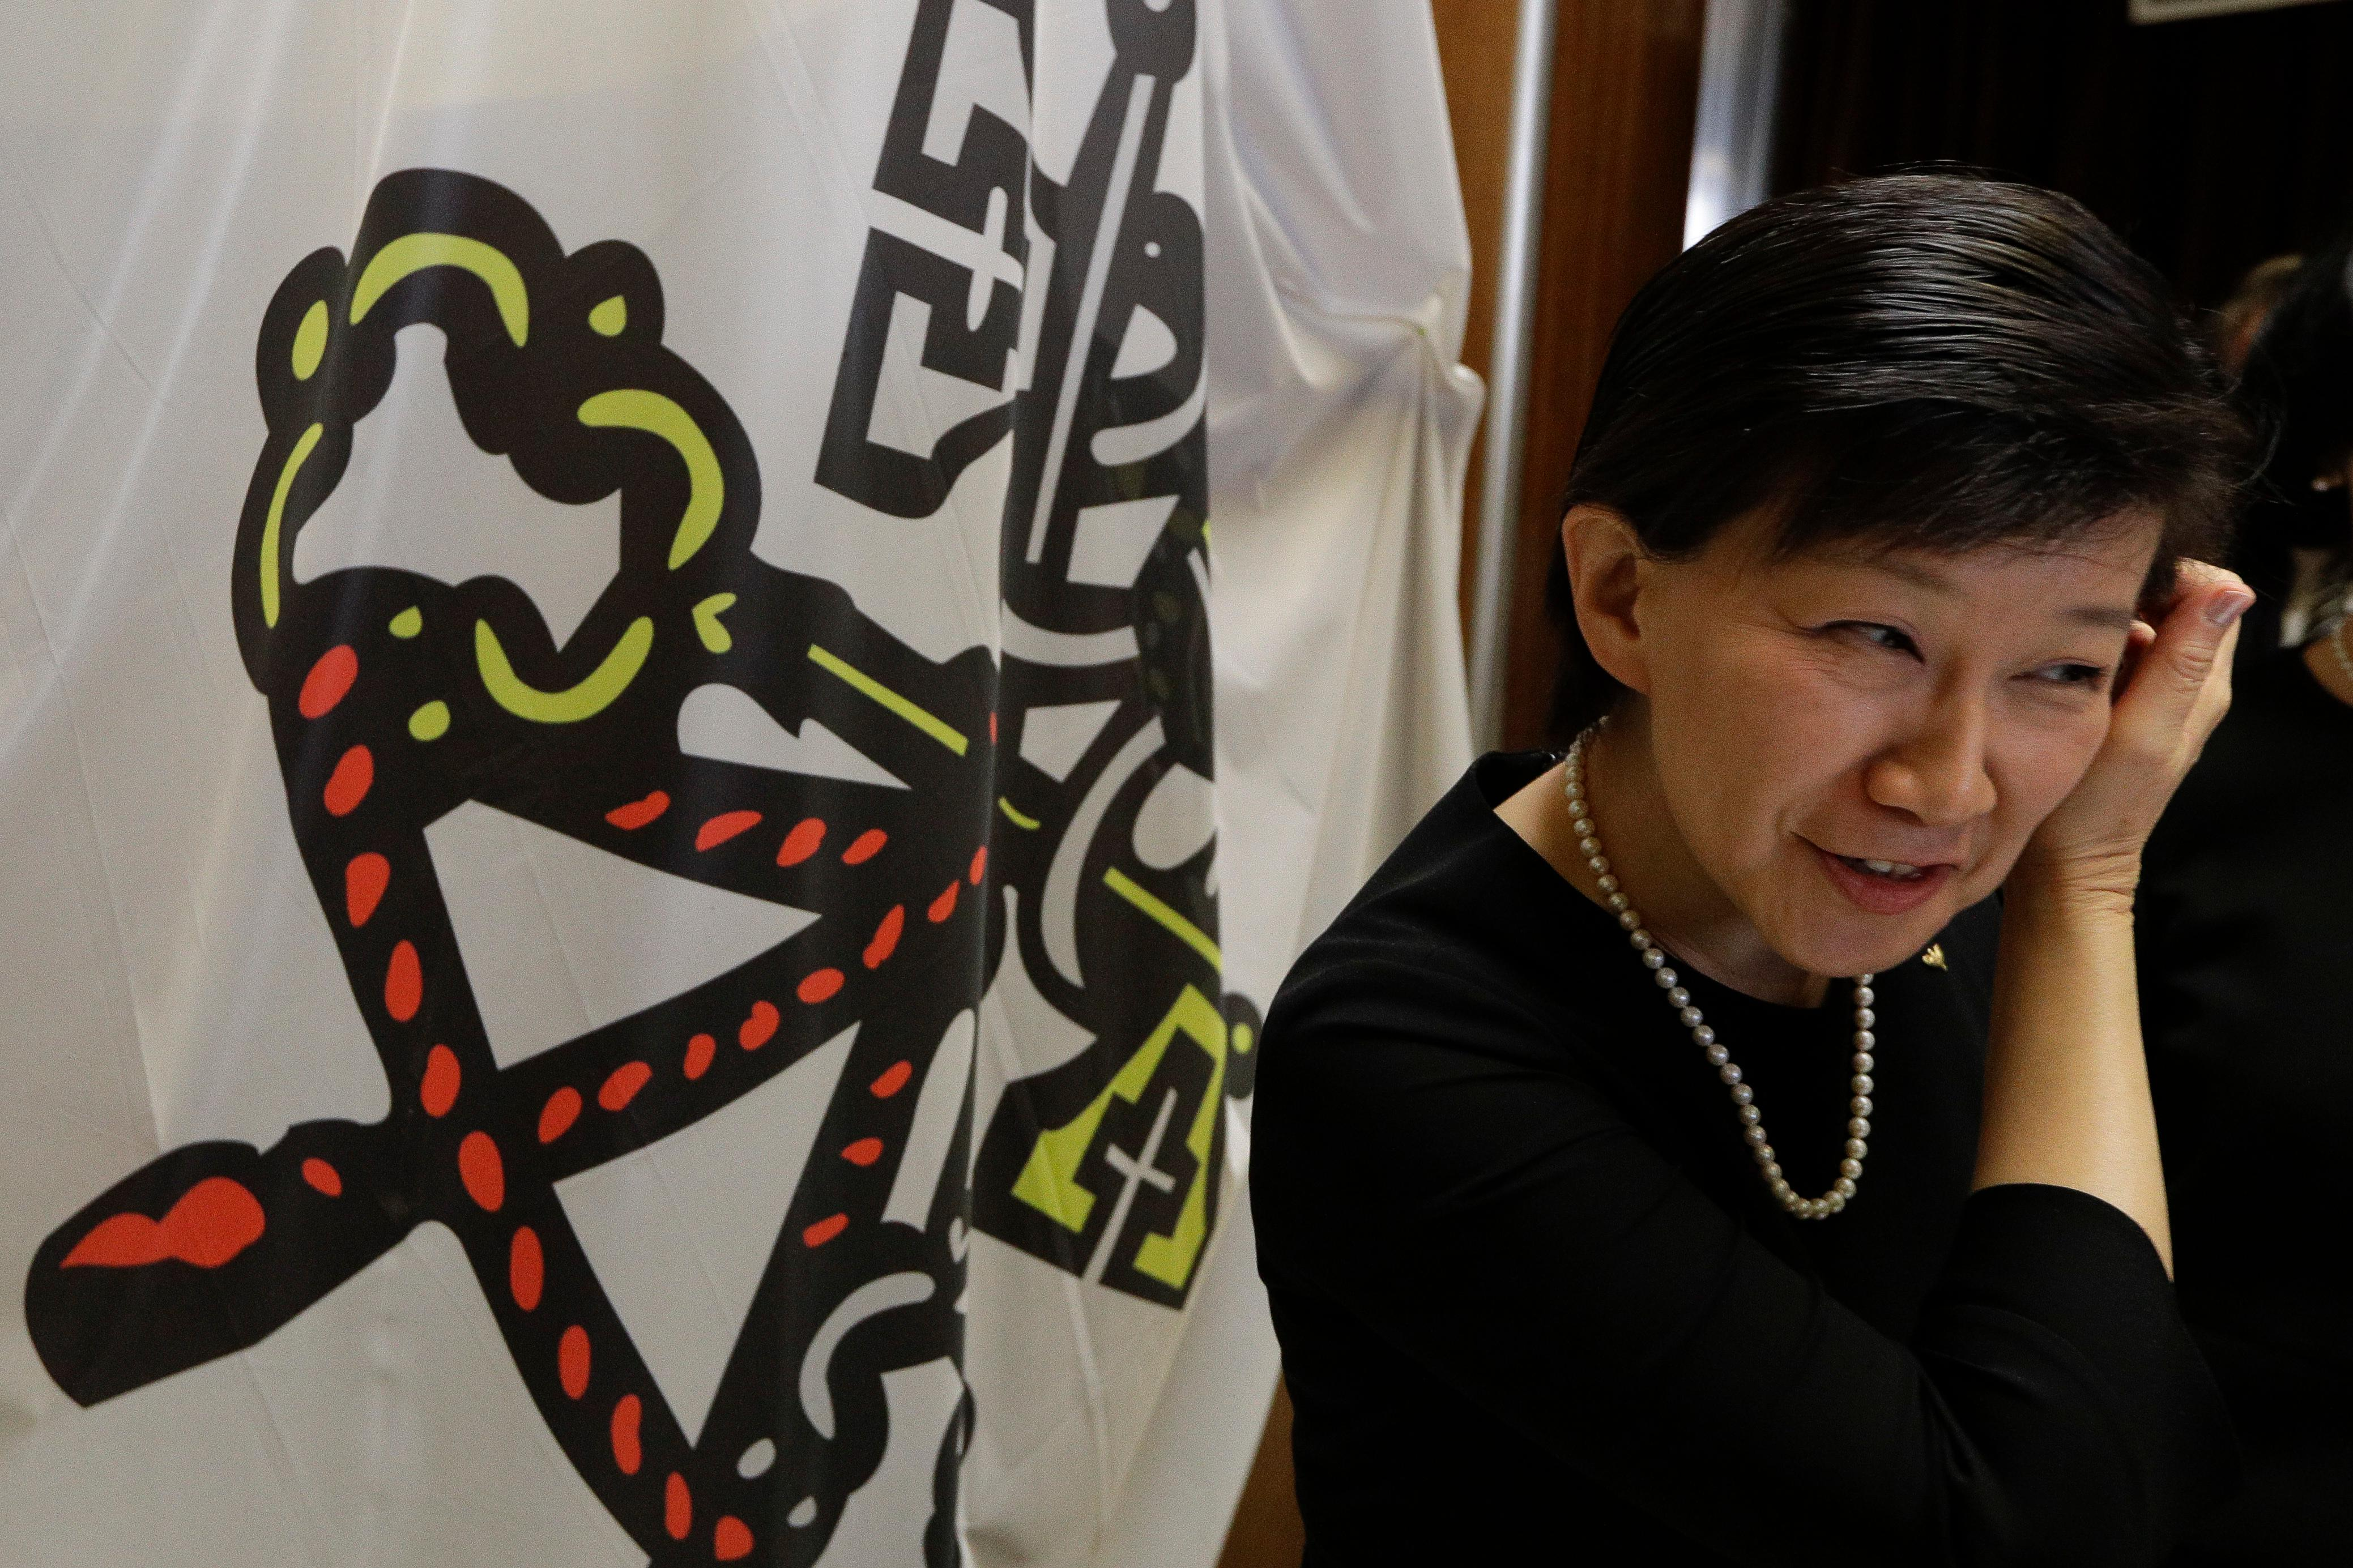 U.N. high representative for disarmament affairs Izumi Nakamitsu arrives for interviews during a break of a conference on nuclear disarmament, at the Vatican, Friday, Nov. 10, 2017. The Vatican hosted Nobel laureates, U.N. and NATO officials and a handful of nuclear powers at a conference aimed at galvanizing support for a global shift from the Cold War era policy of nuclear deterrence to one of total nuclear disarmament.(AP Photo/Andrew Medichini)